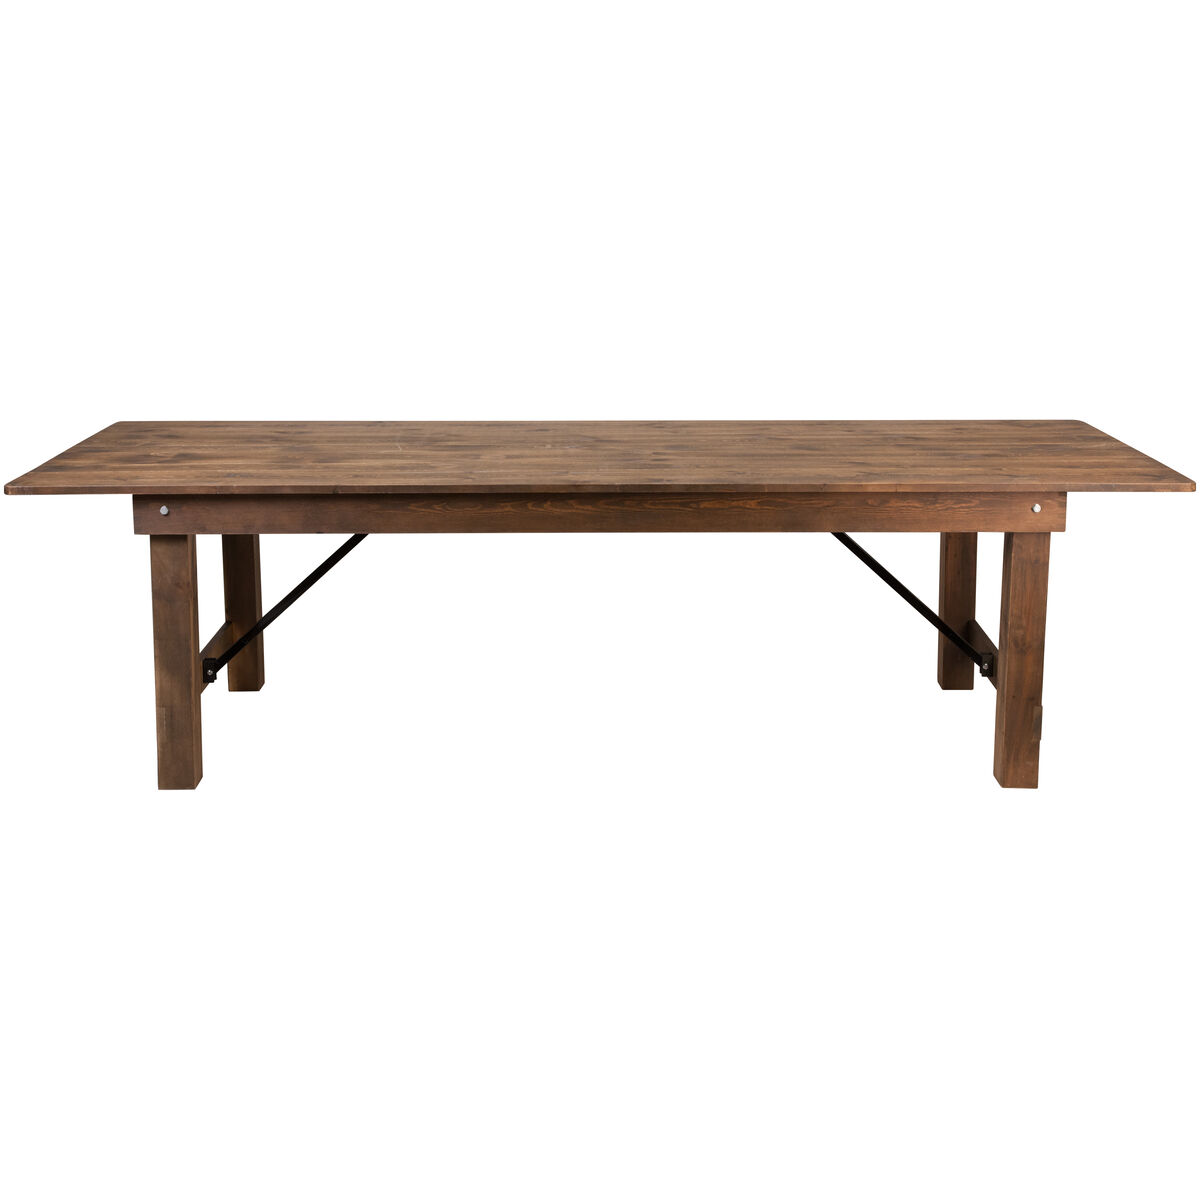 Our Hercules Series 9 X 40 Rectangular Antique Rustic Solid Pine Folding Farm Table